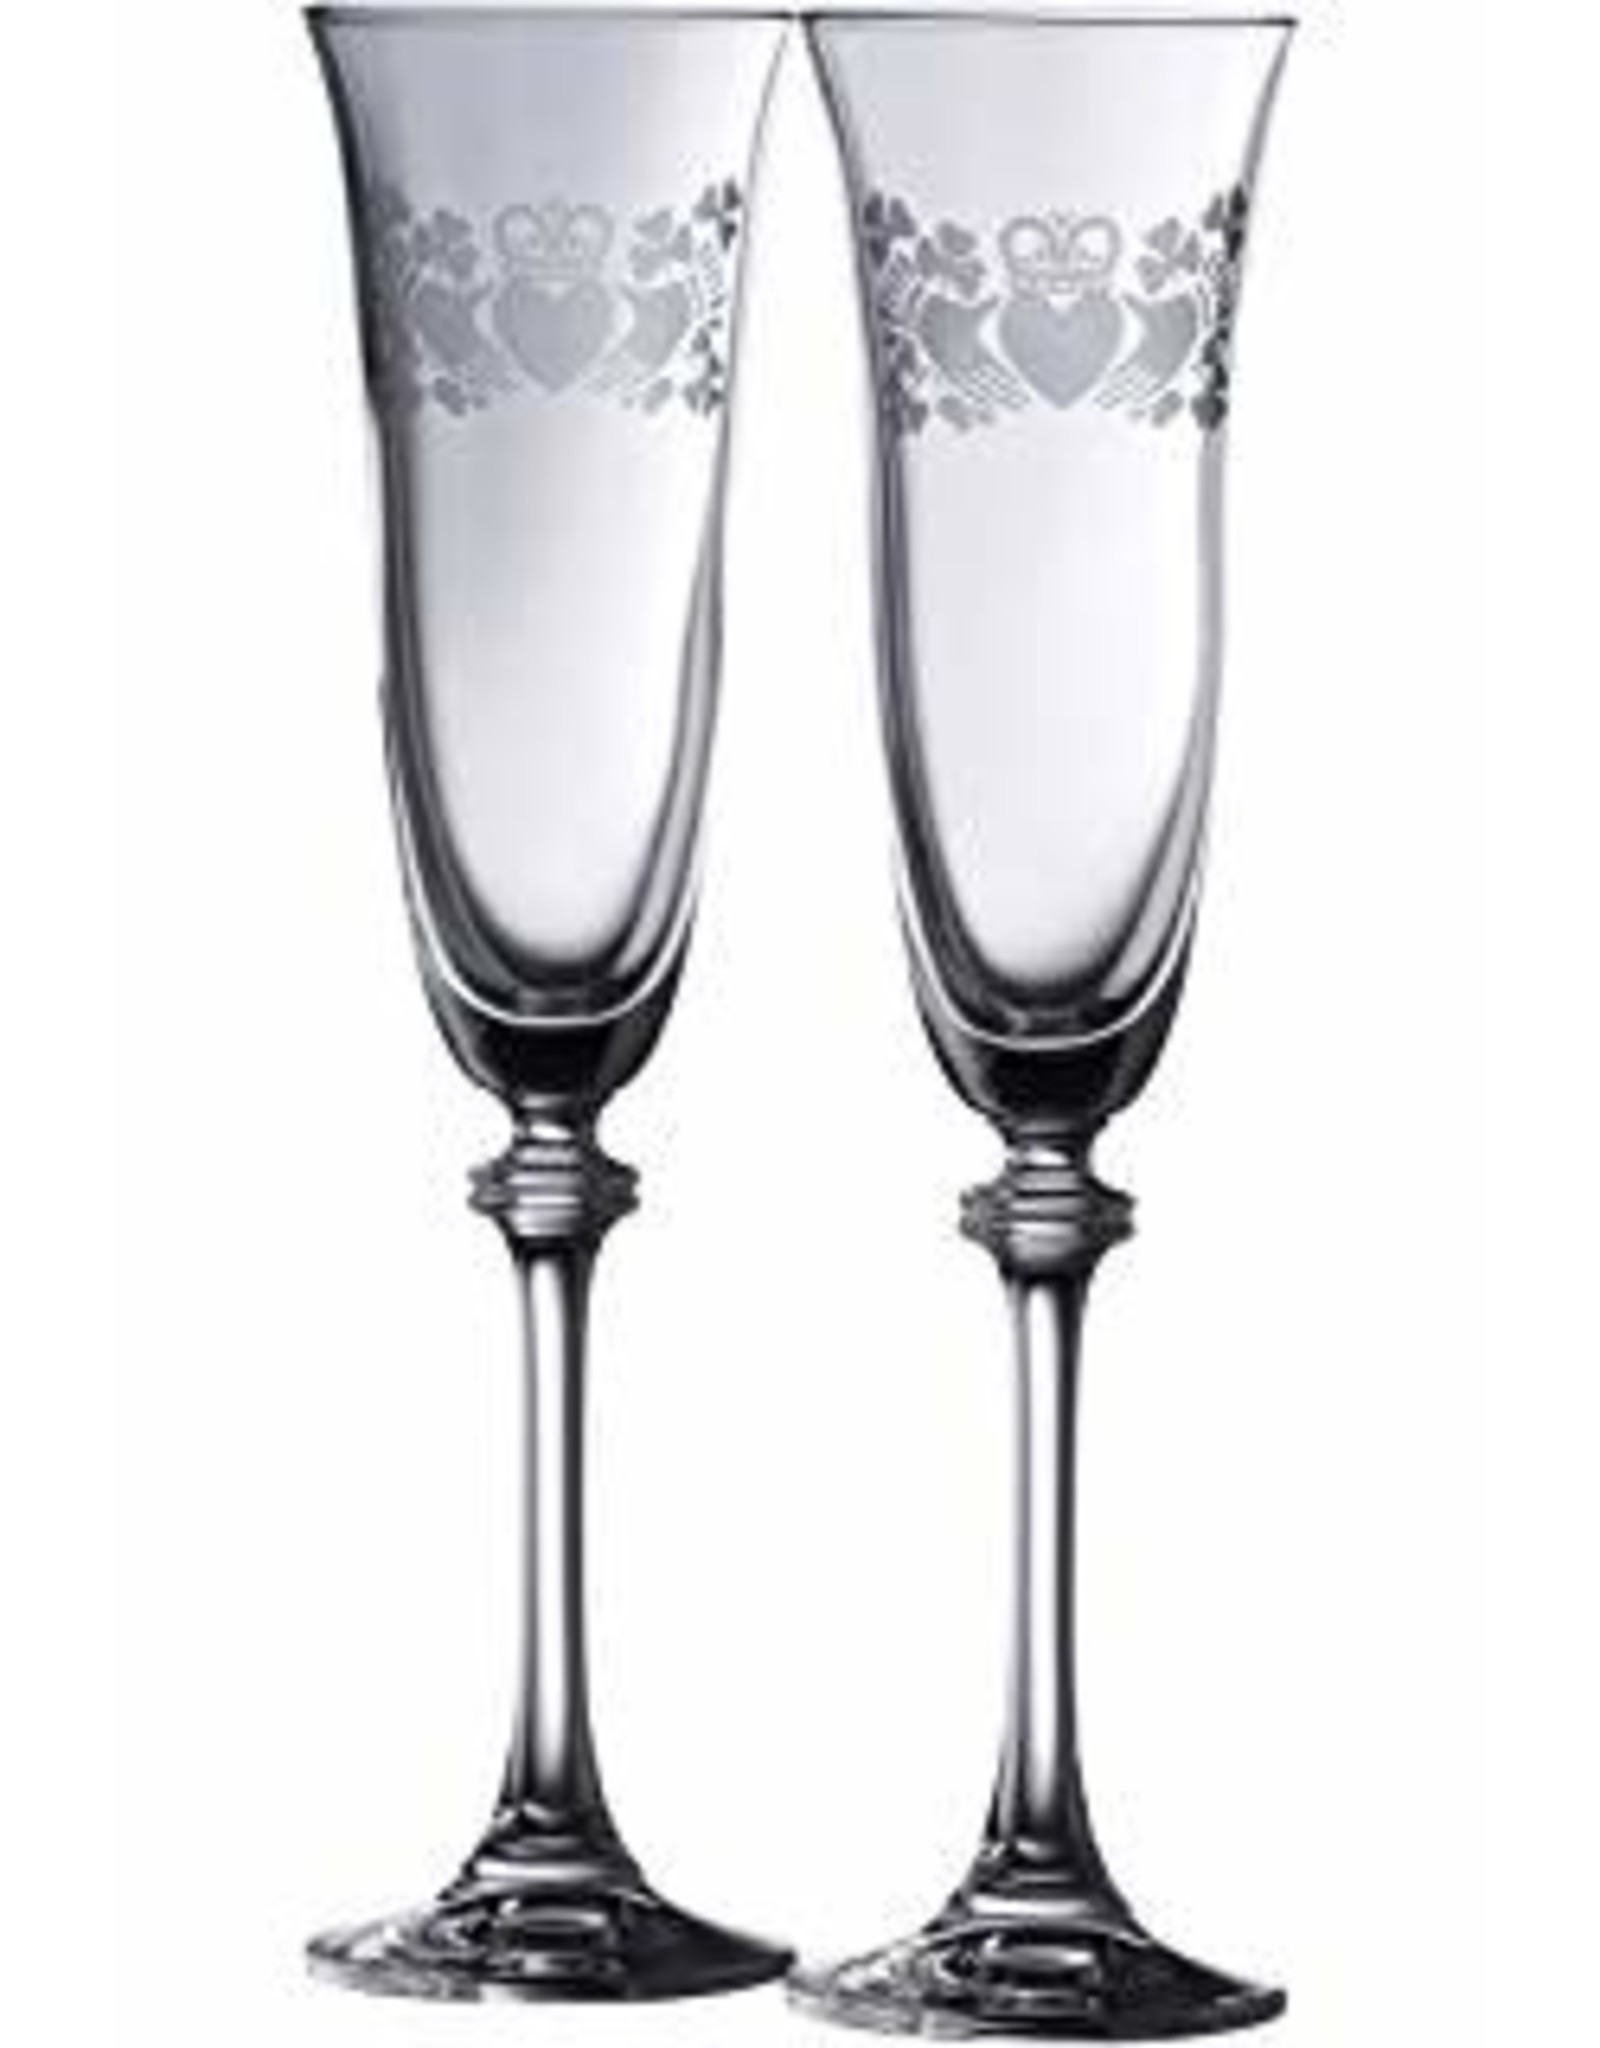 Galway Crystal Claddagh Liberty Flute Pair by Galway Crystal